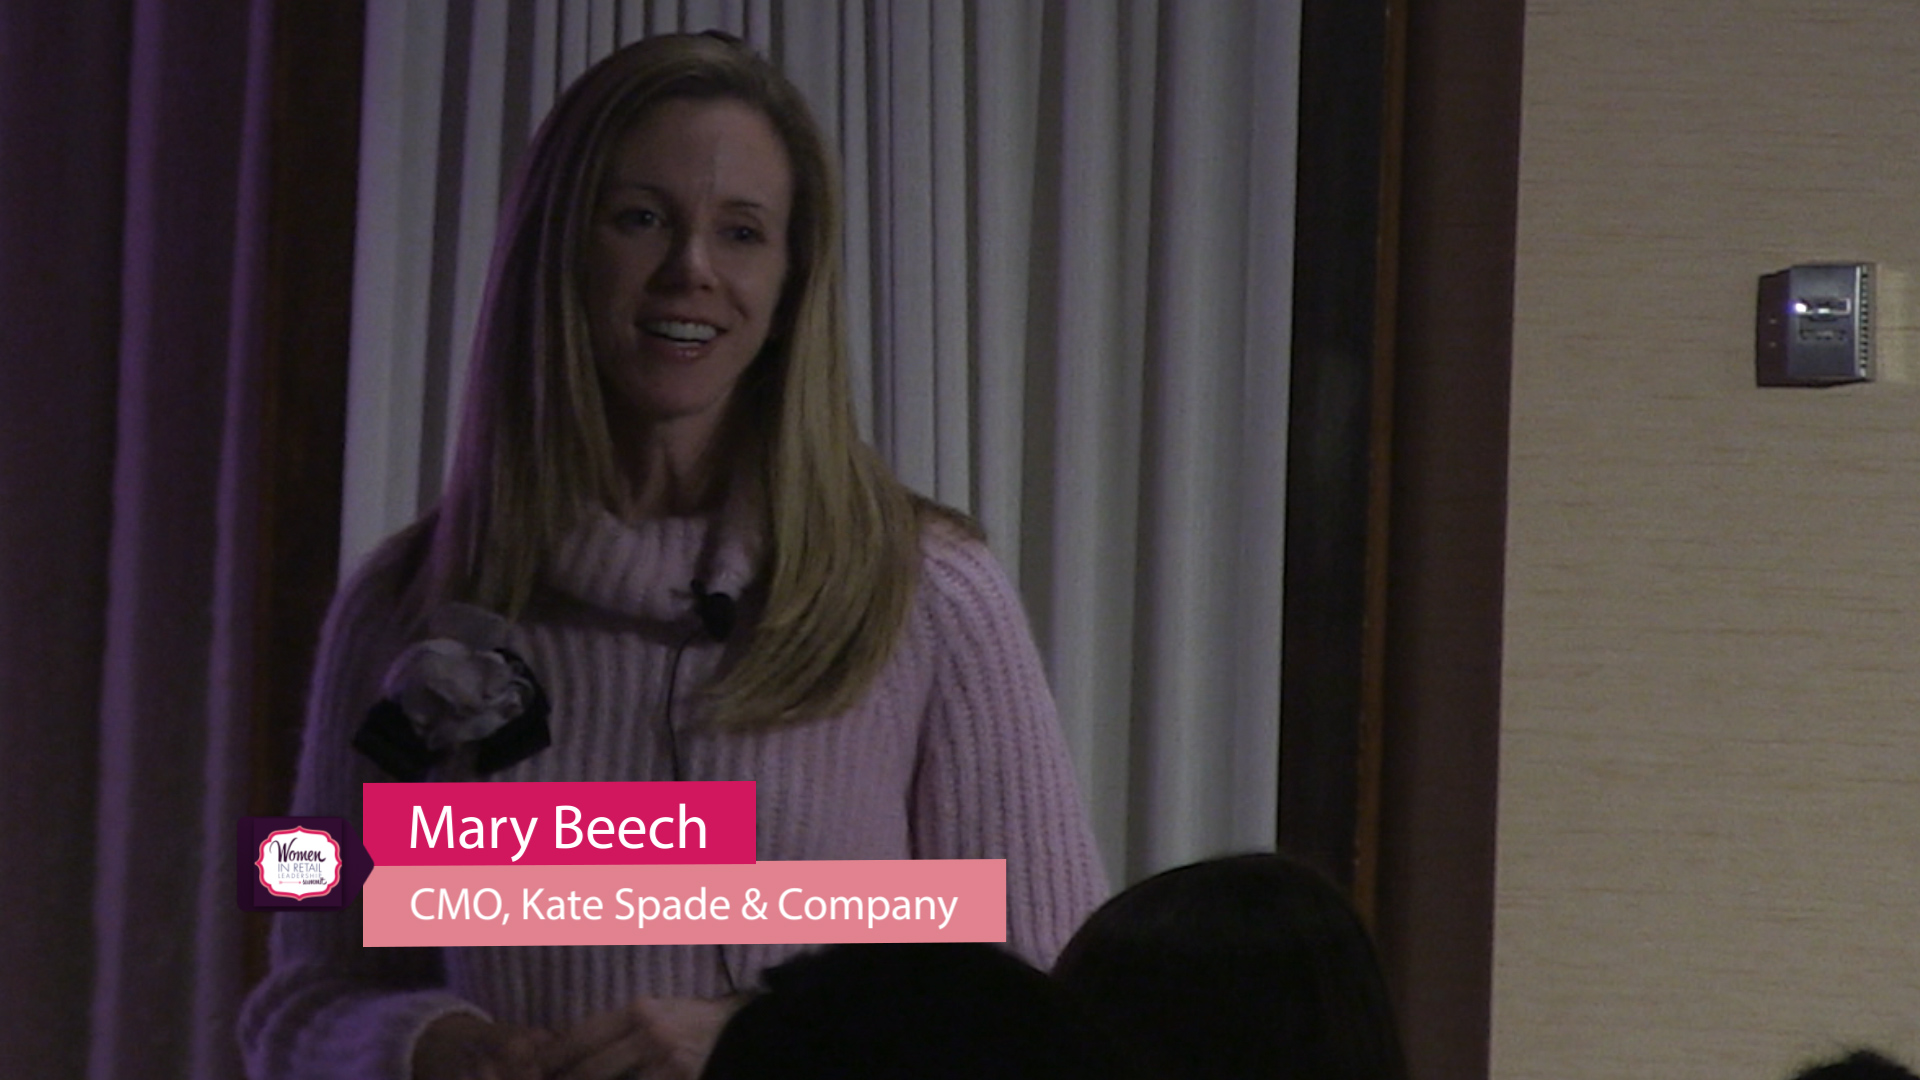 Mary Beech at Girl Talks East